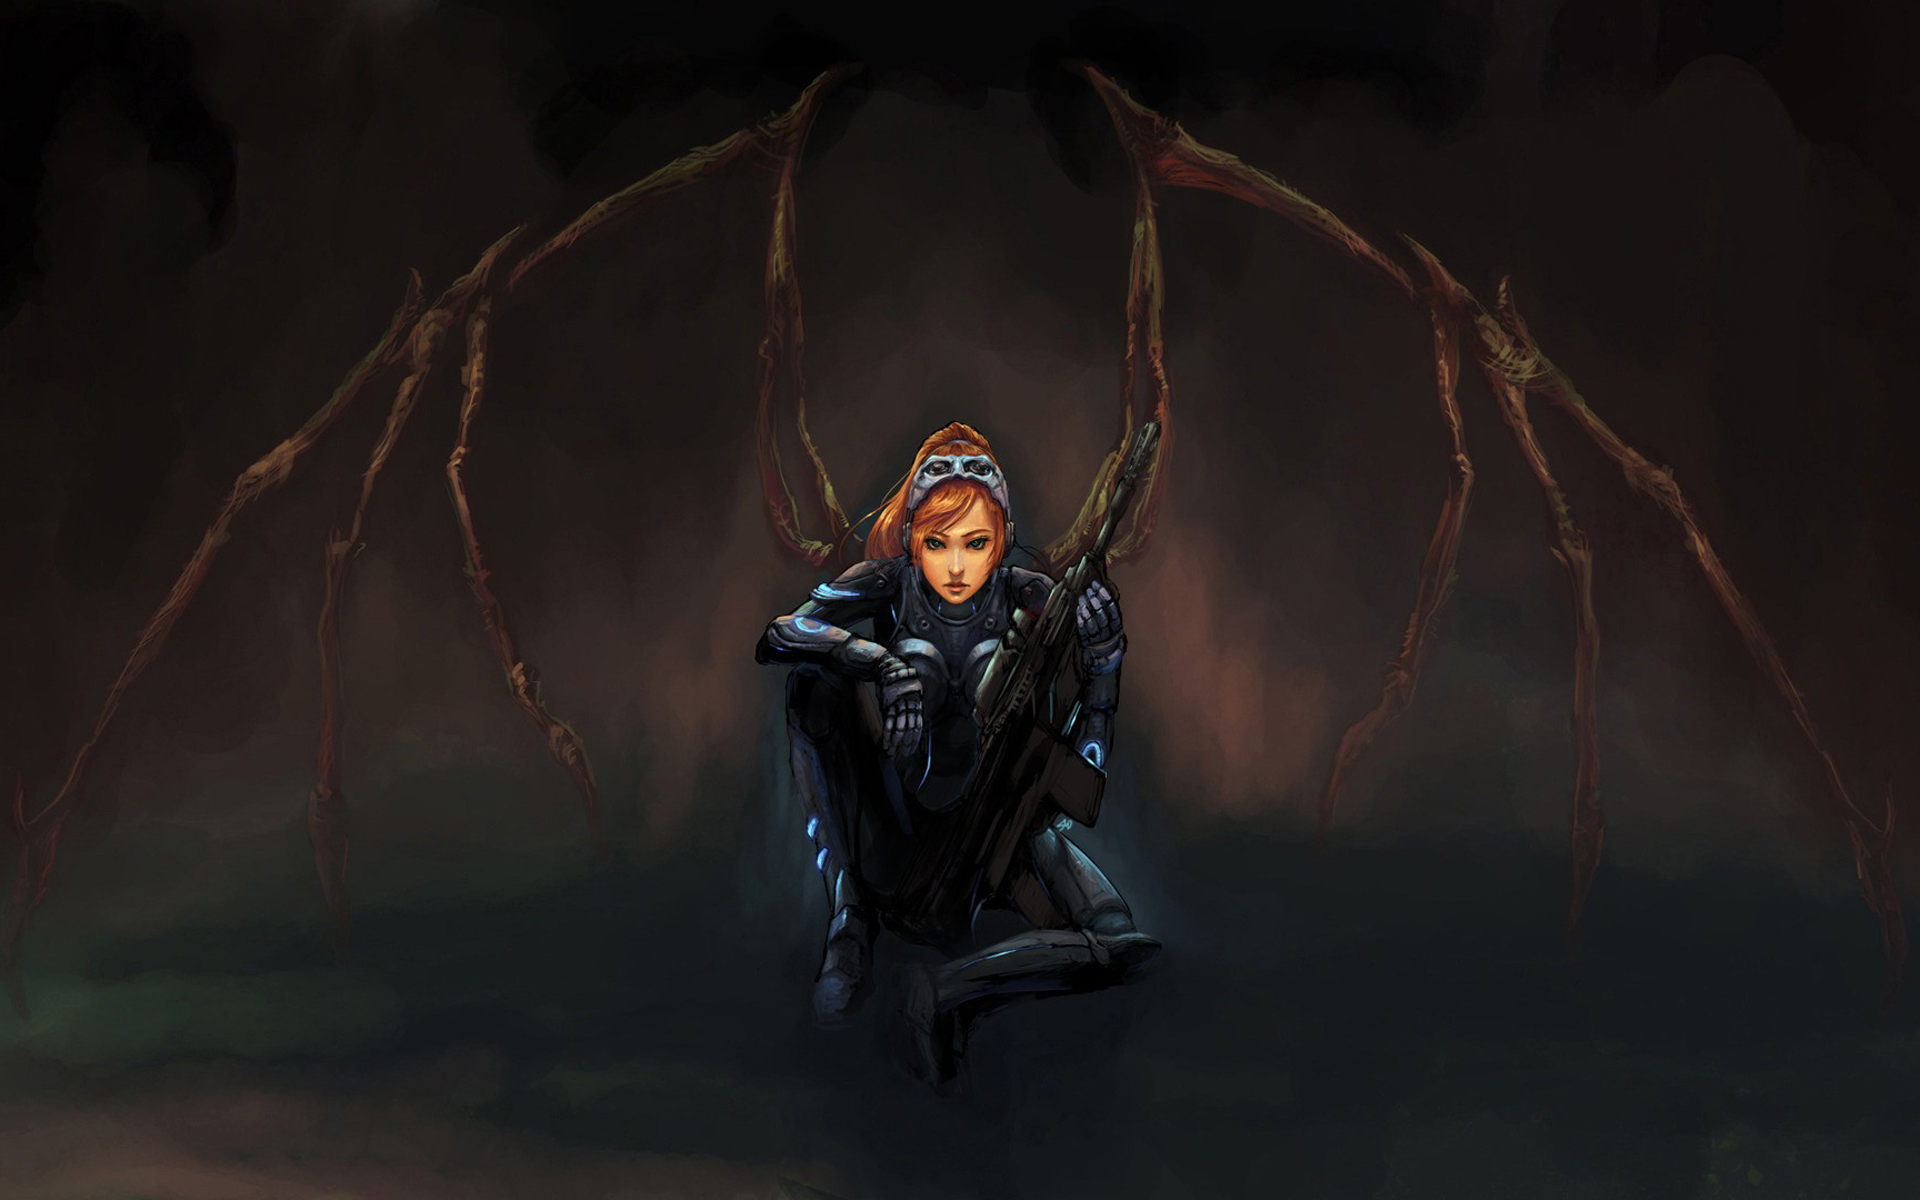 Tag Starcraft2 Queen of Blades Wallpapers Appreciate Latest Updates 1920x1200